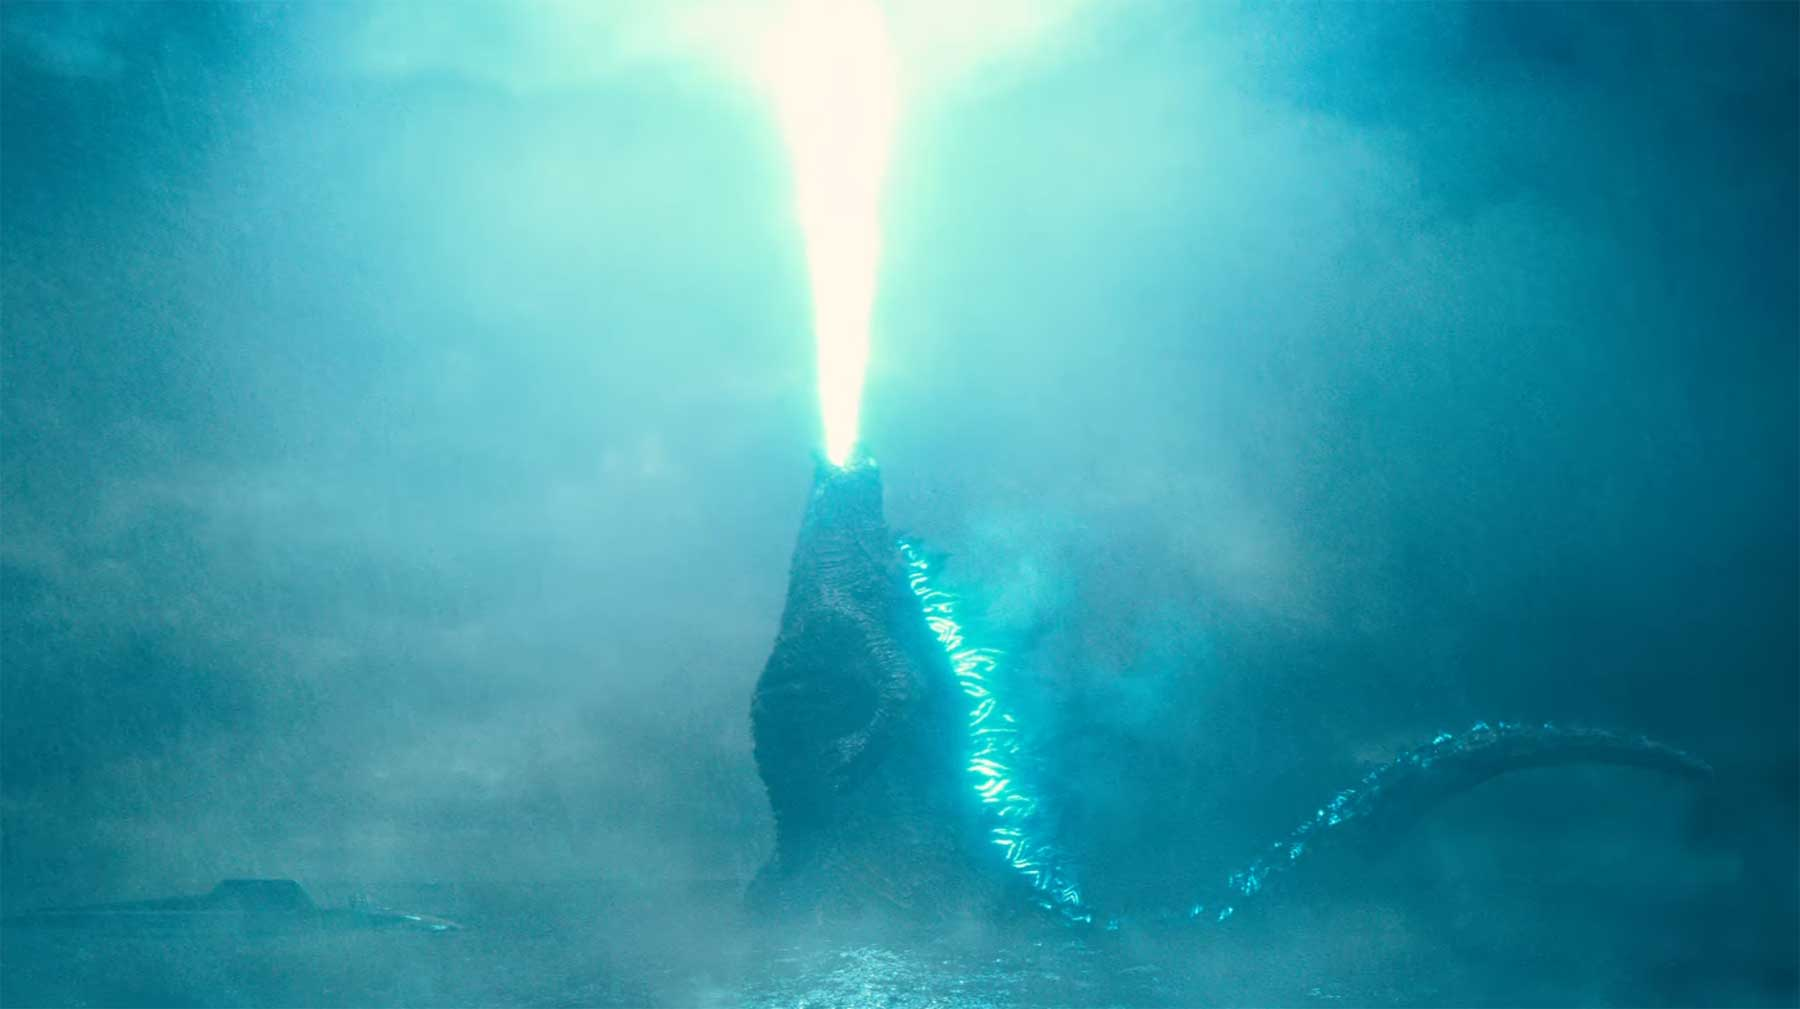 Godzilla: King of the Monsters – Final Trailer